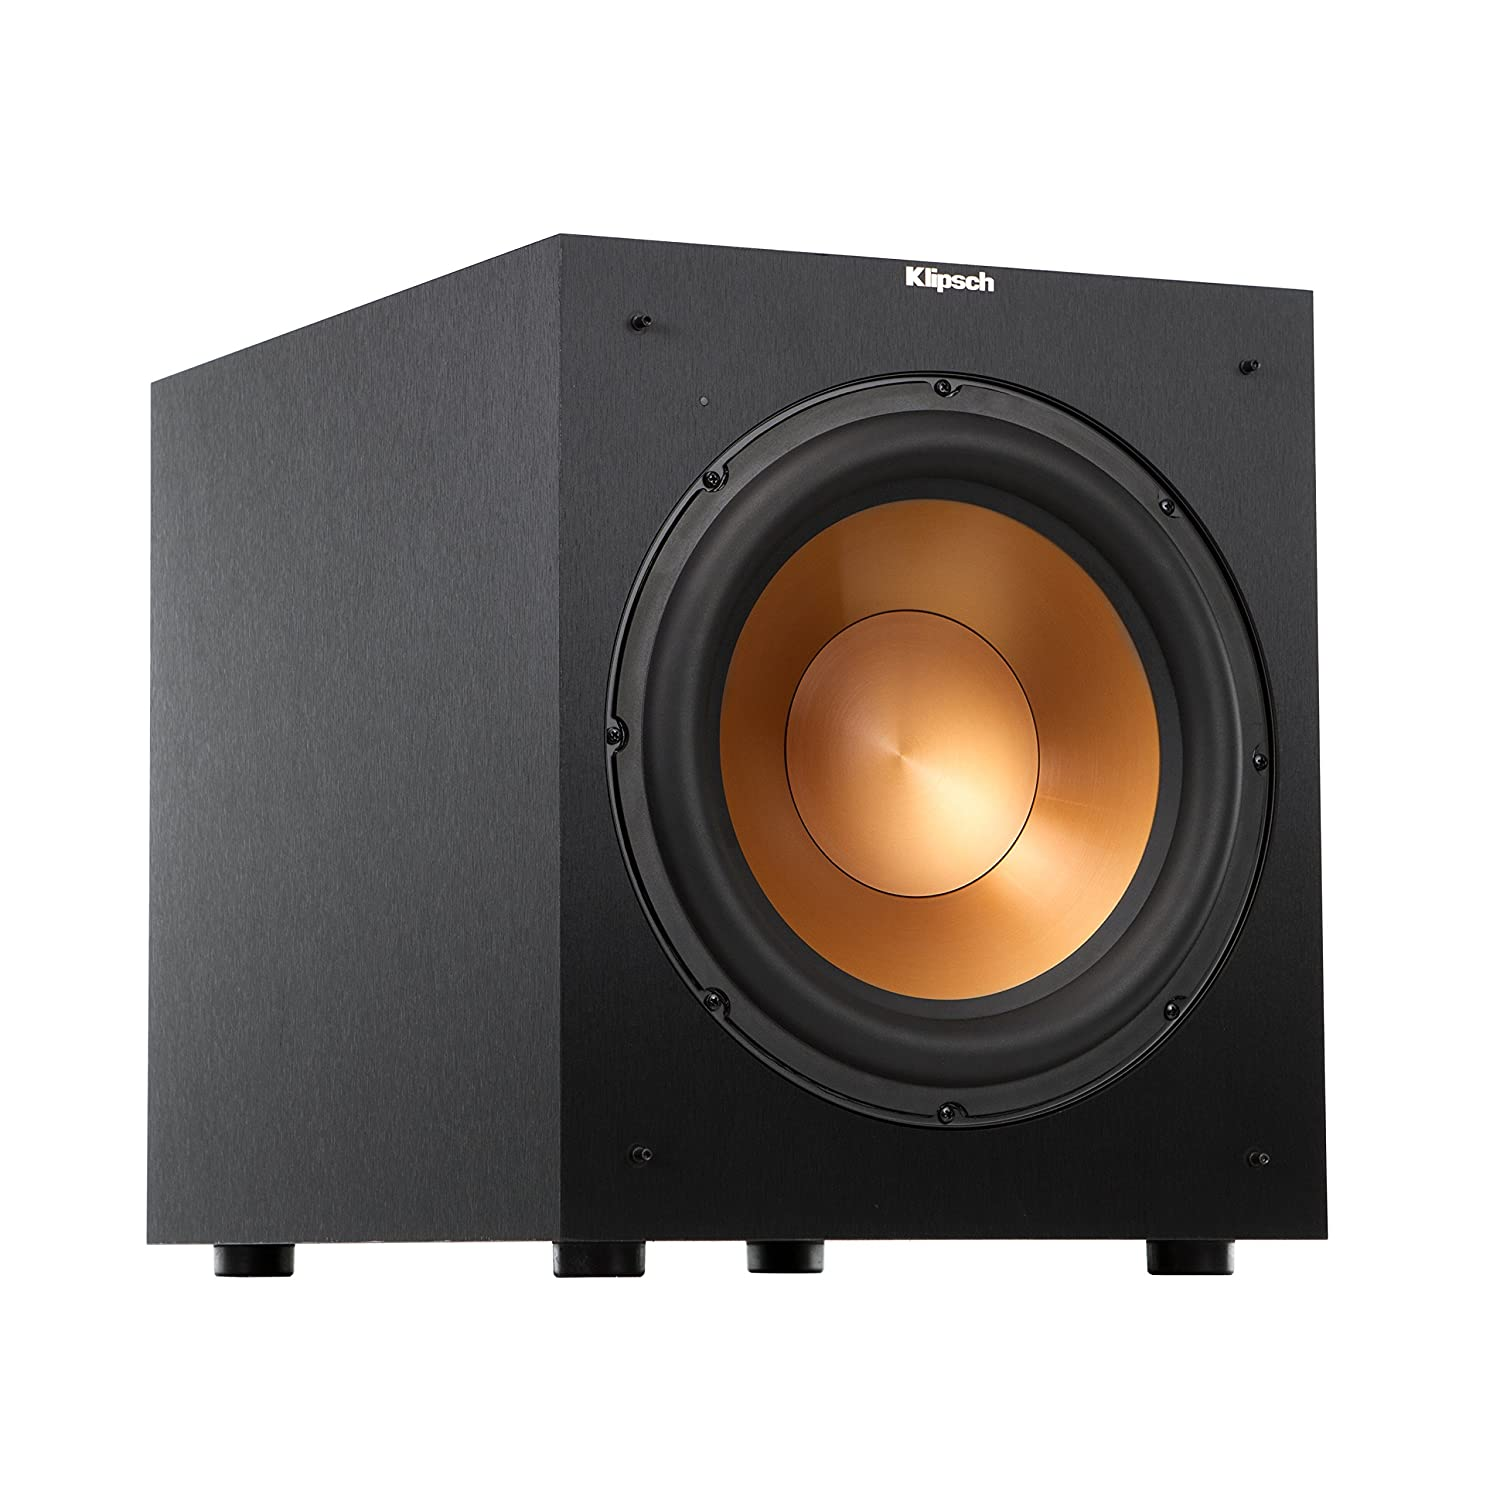 Best Speakers Reviews 2021 - The Ultimate Buyer's Guide